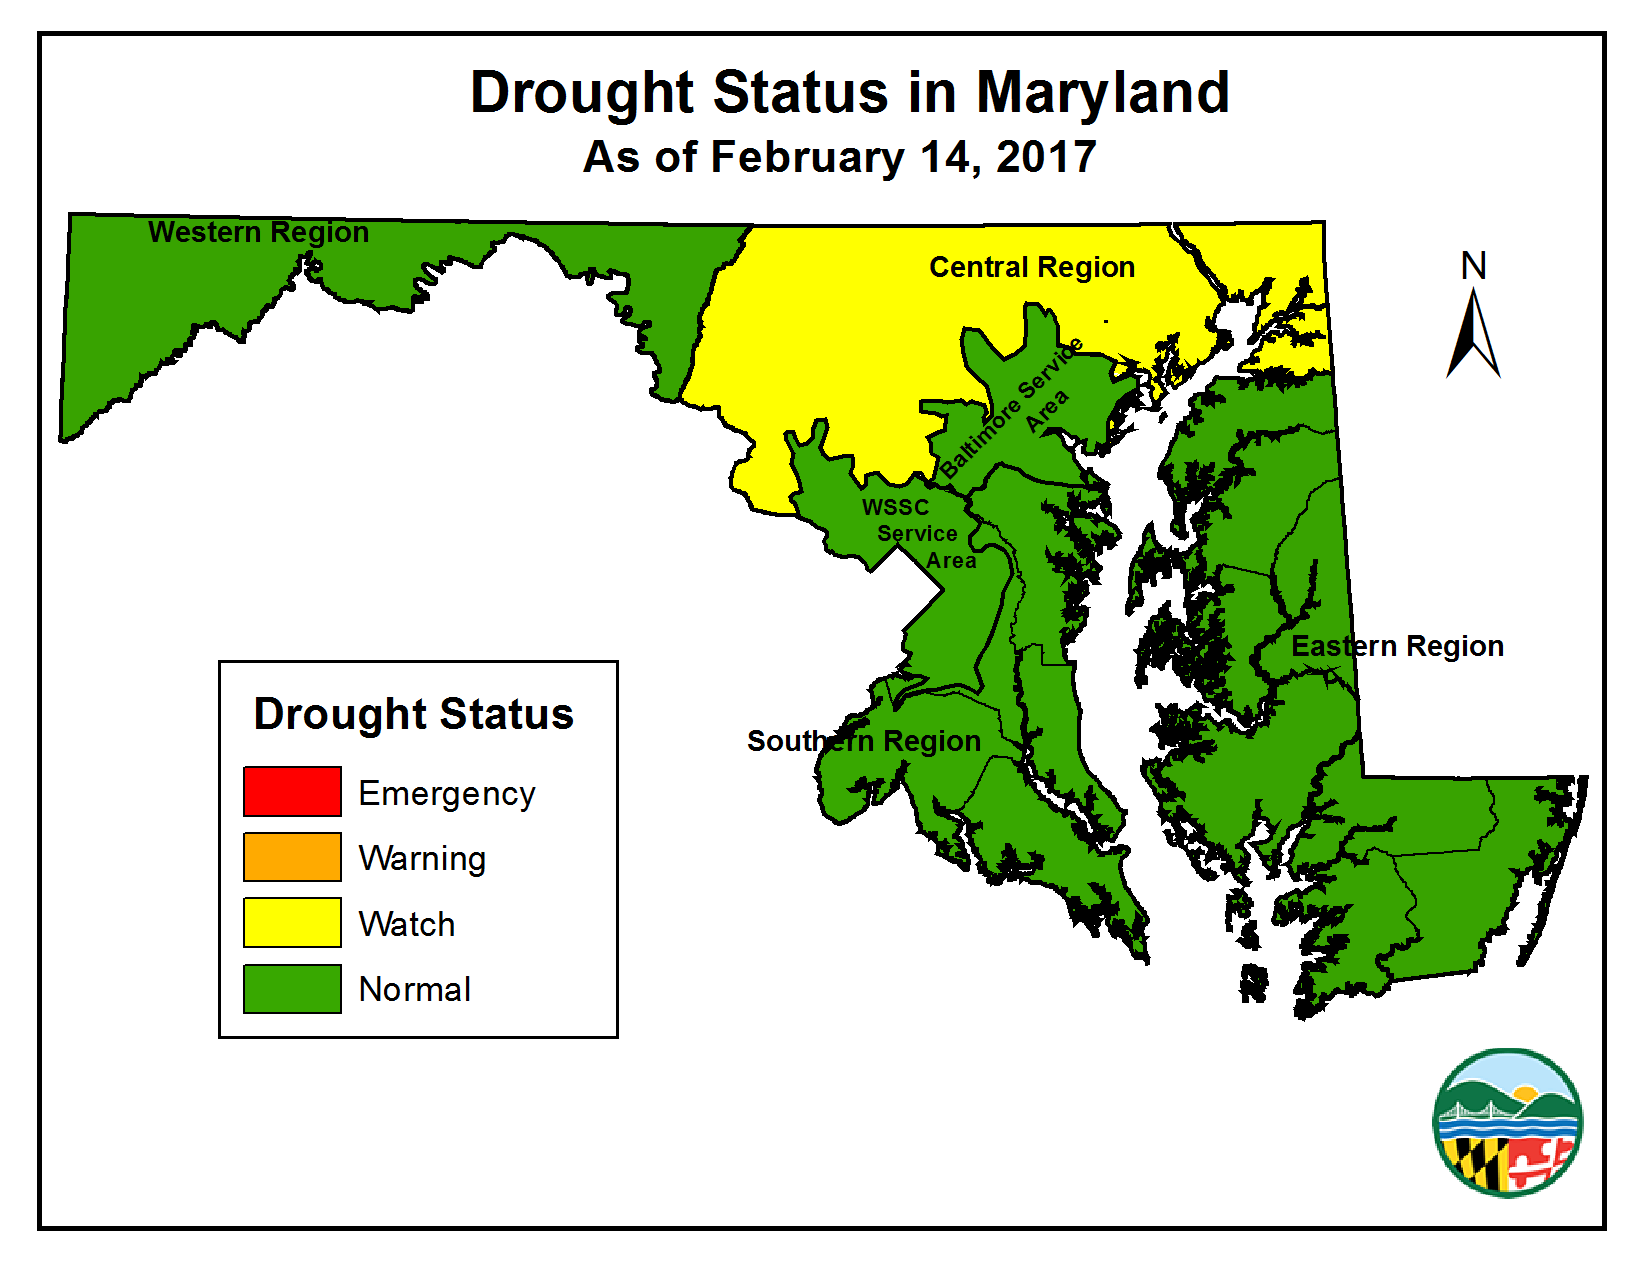 Drought Status as of February 14, 2017